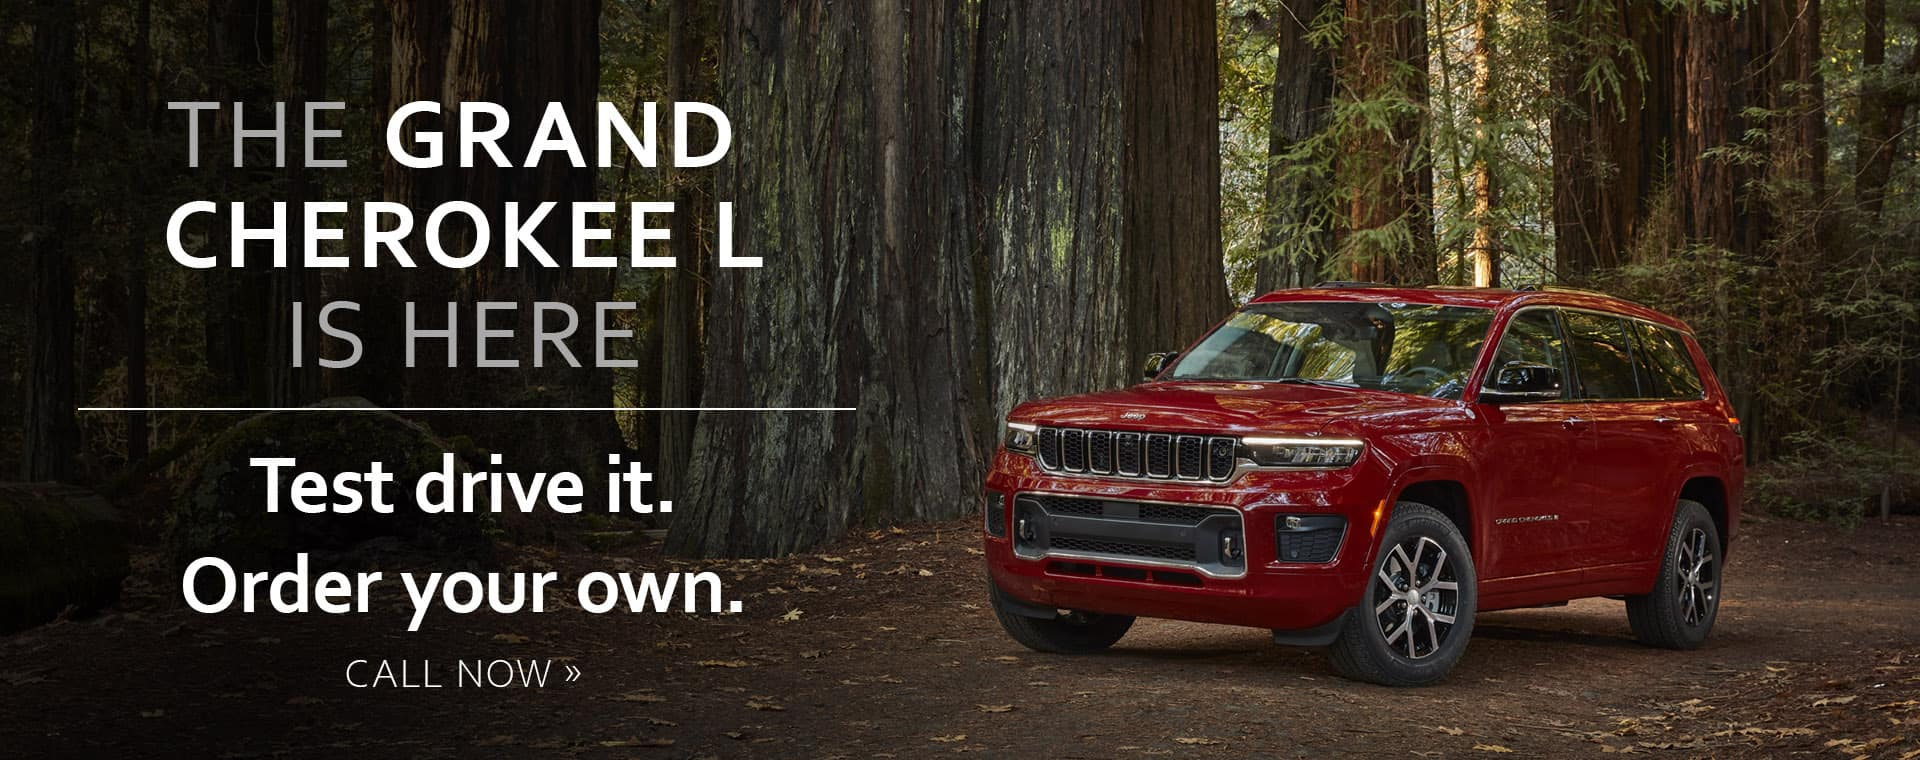 THE GRAND CHEROKEE L IS HERE TEST DRIVE IT. ORDER RYOUR OWN. CALL NOW